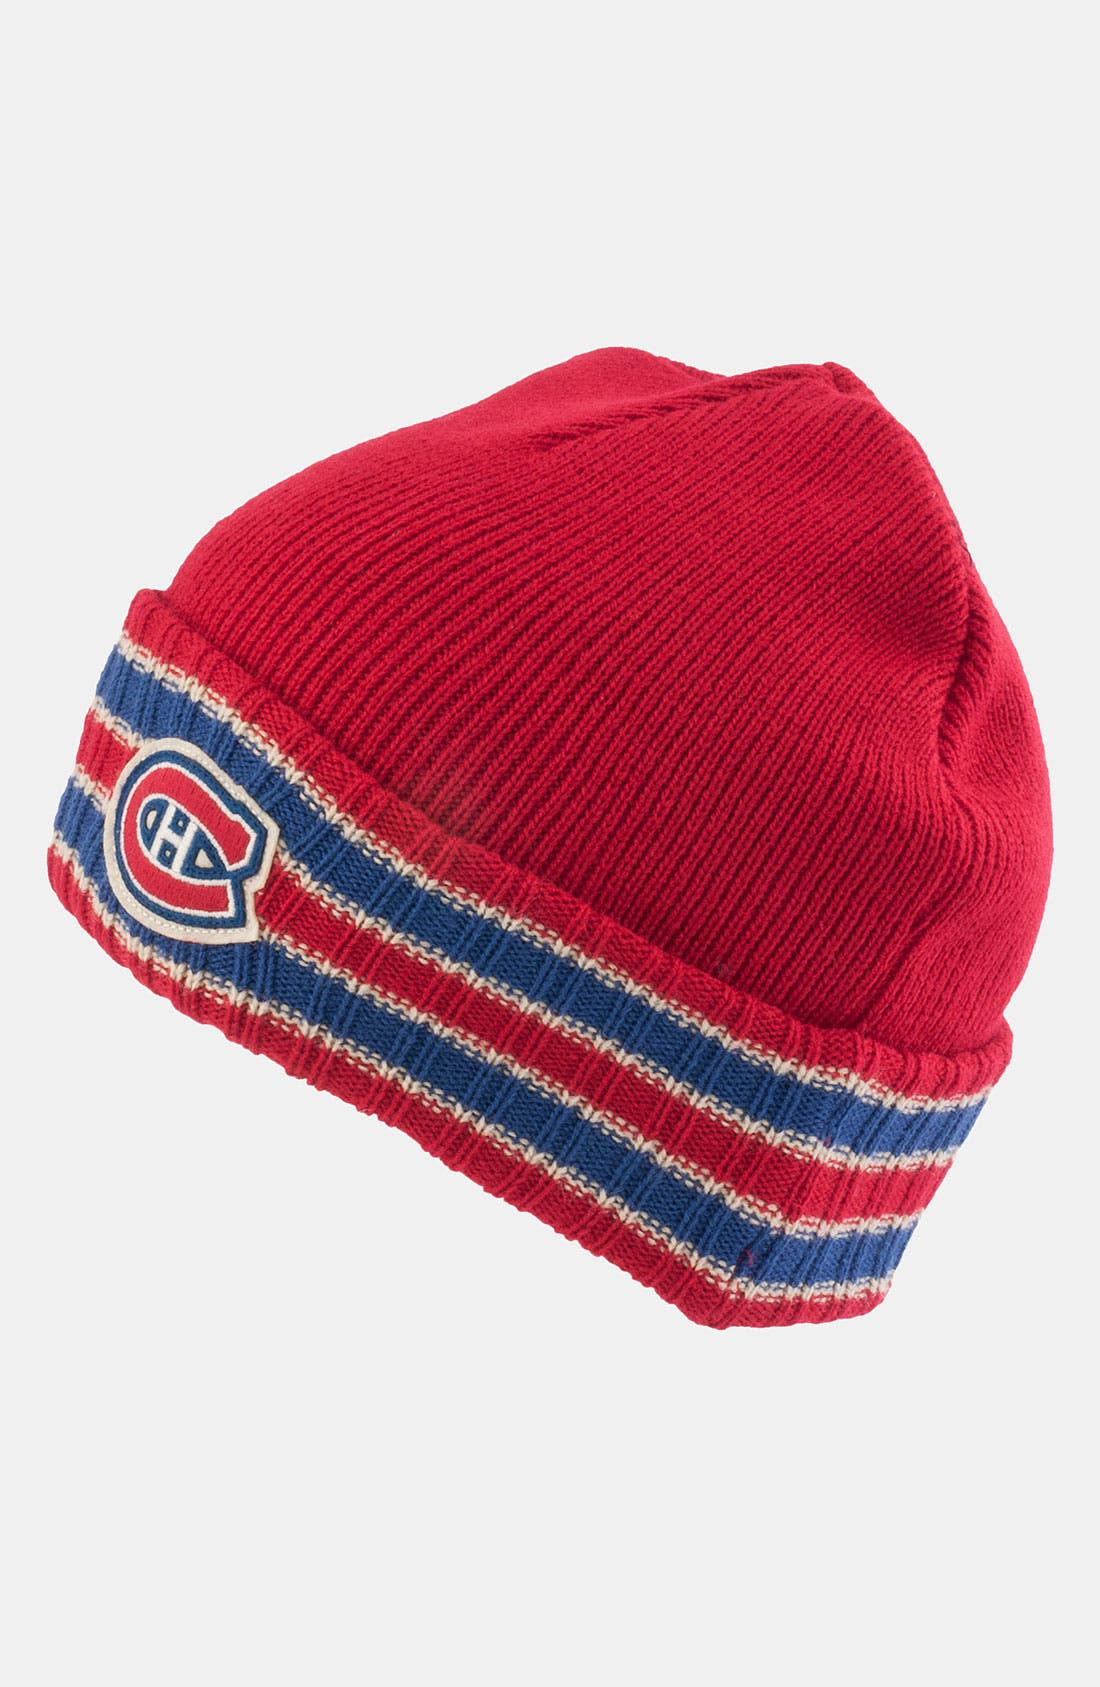 Main Image - American Needle 'Montreal Canadiens - Slash' Knit Hat